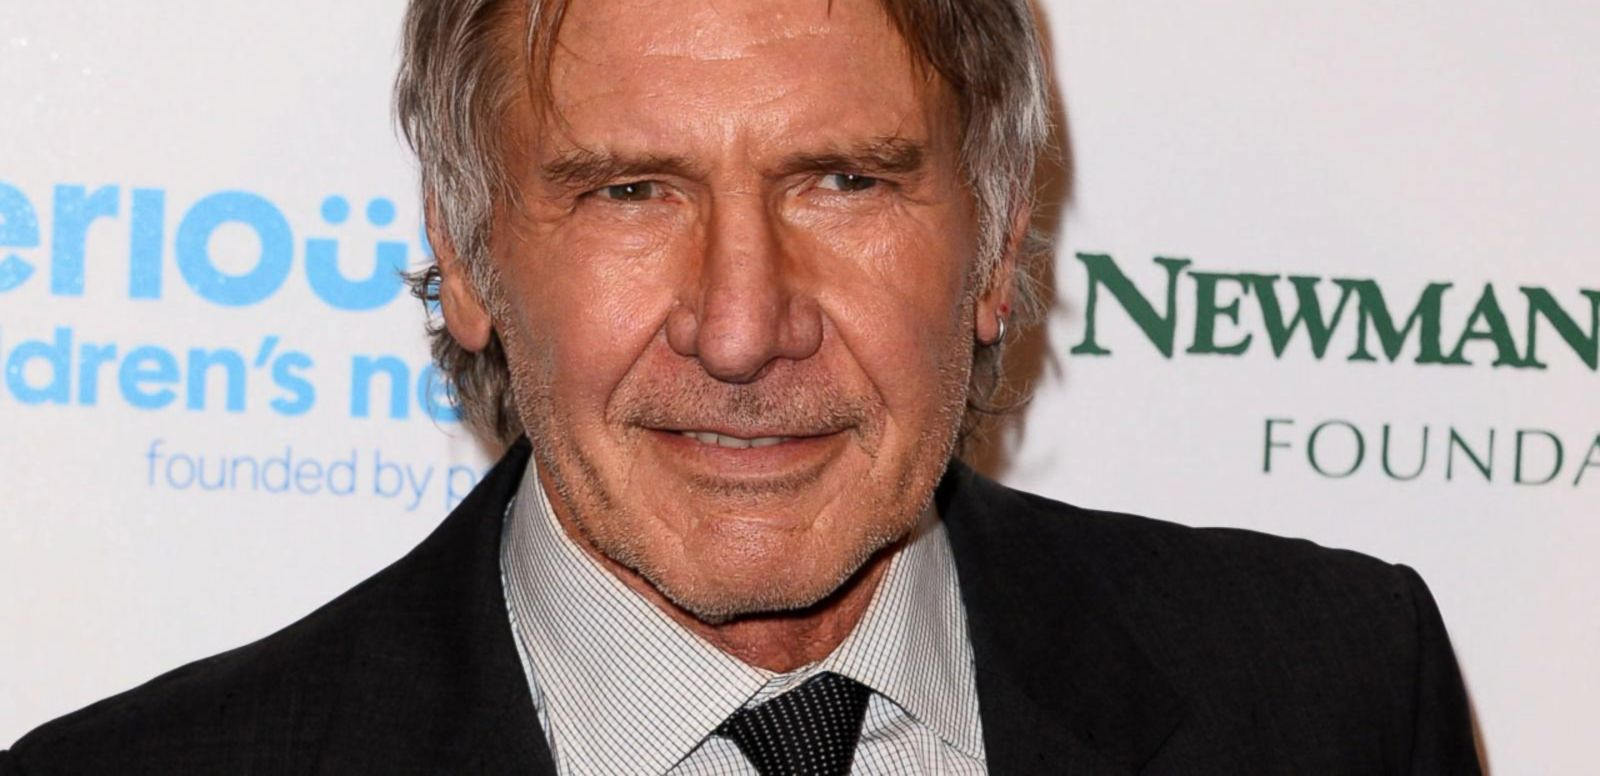 VIDEO: The 72-year-old Star Wars actor experienced engine failure while flying his WWI era aircraft.